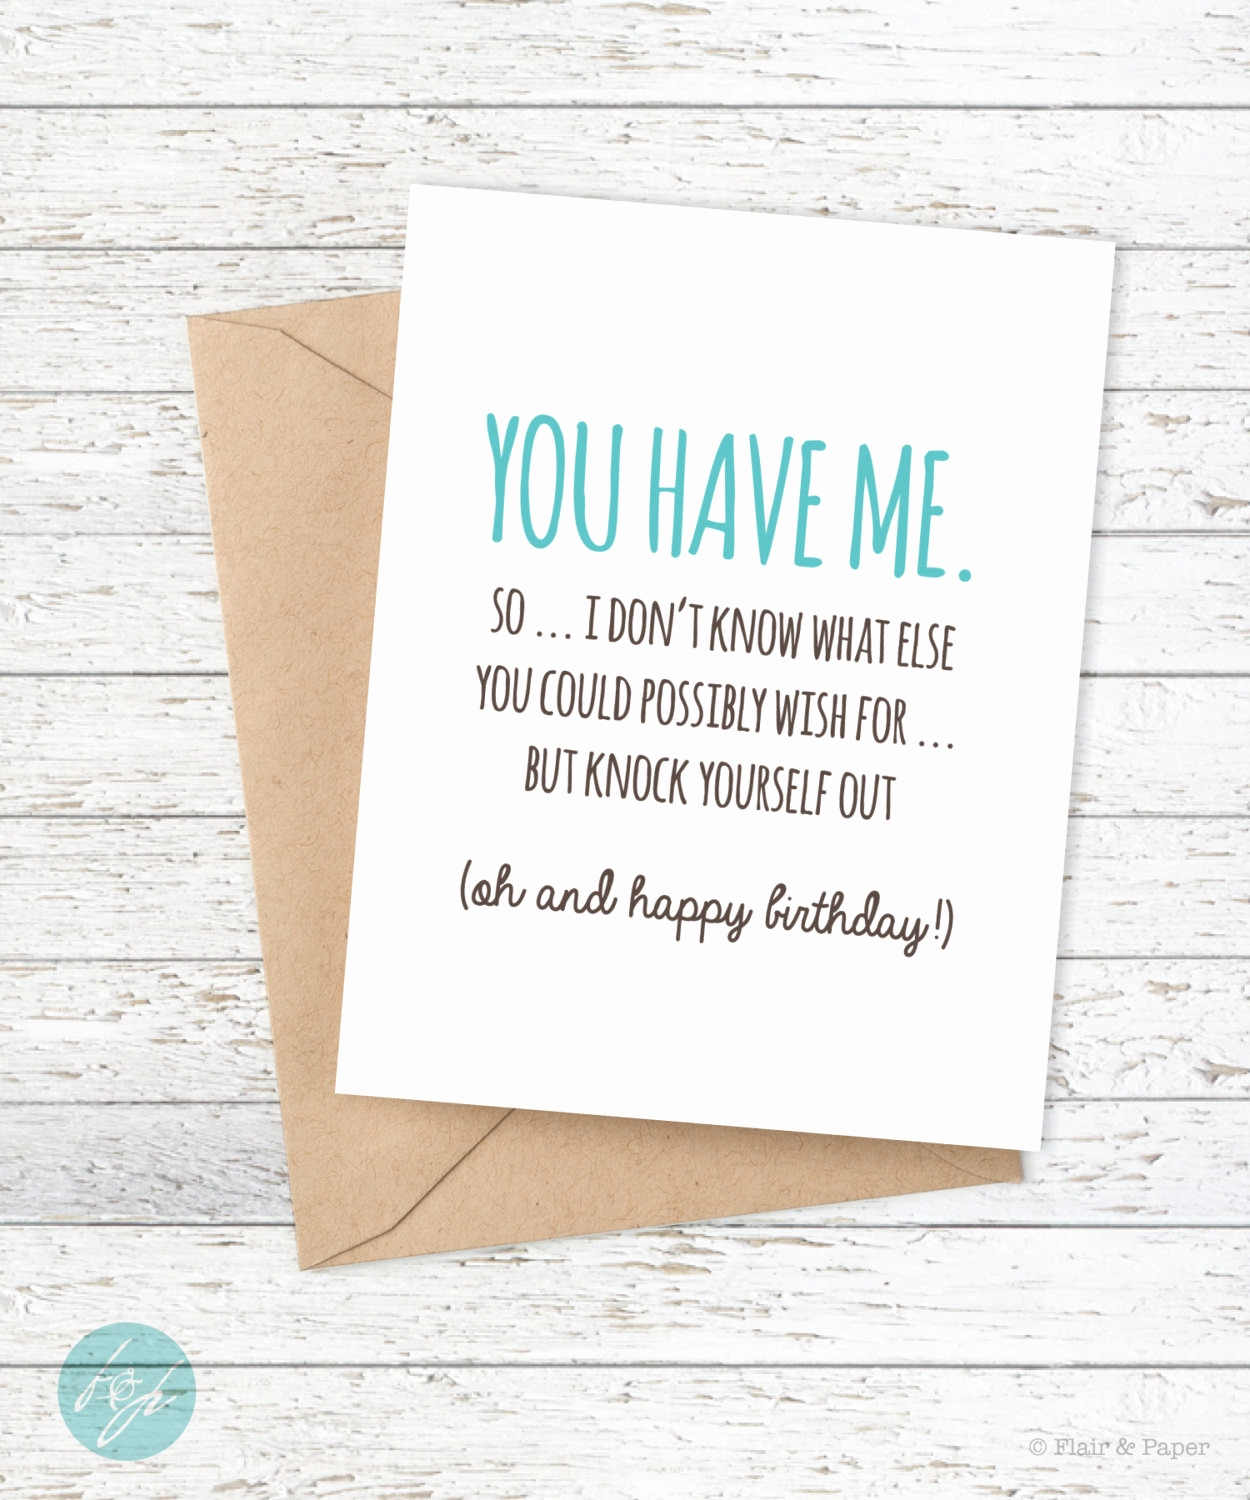 message for dad birthday card ; dad-birthday-card-quotes-new-funny-birthday-card-you-have-me-of-dad-birthday-card-quotes